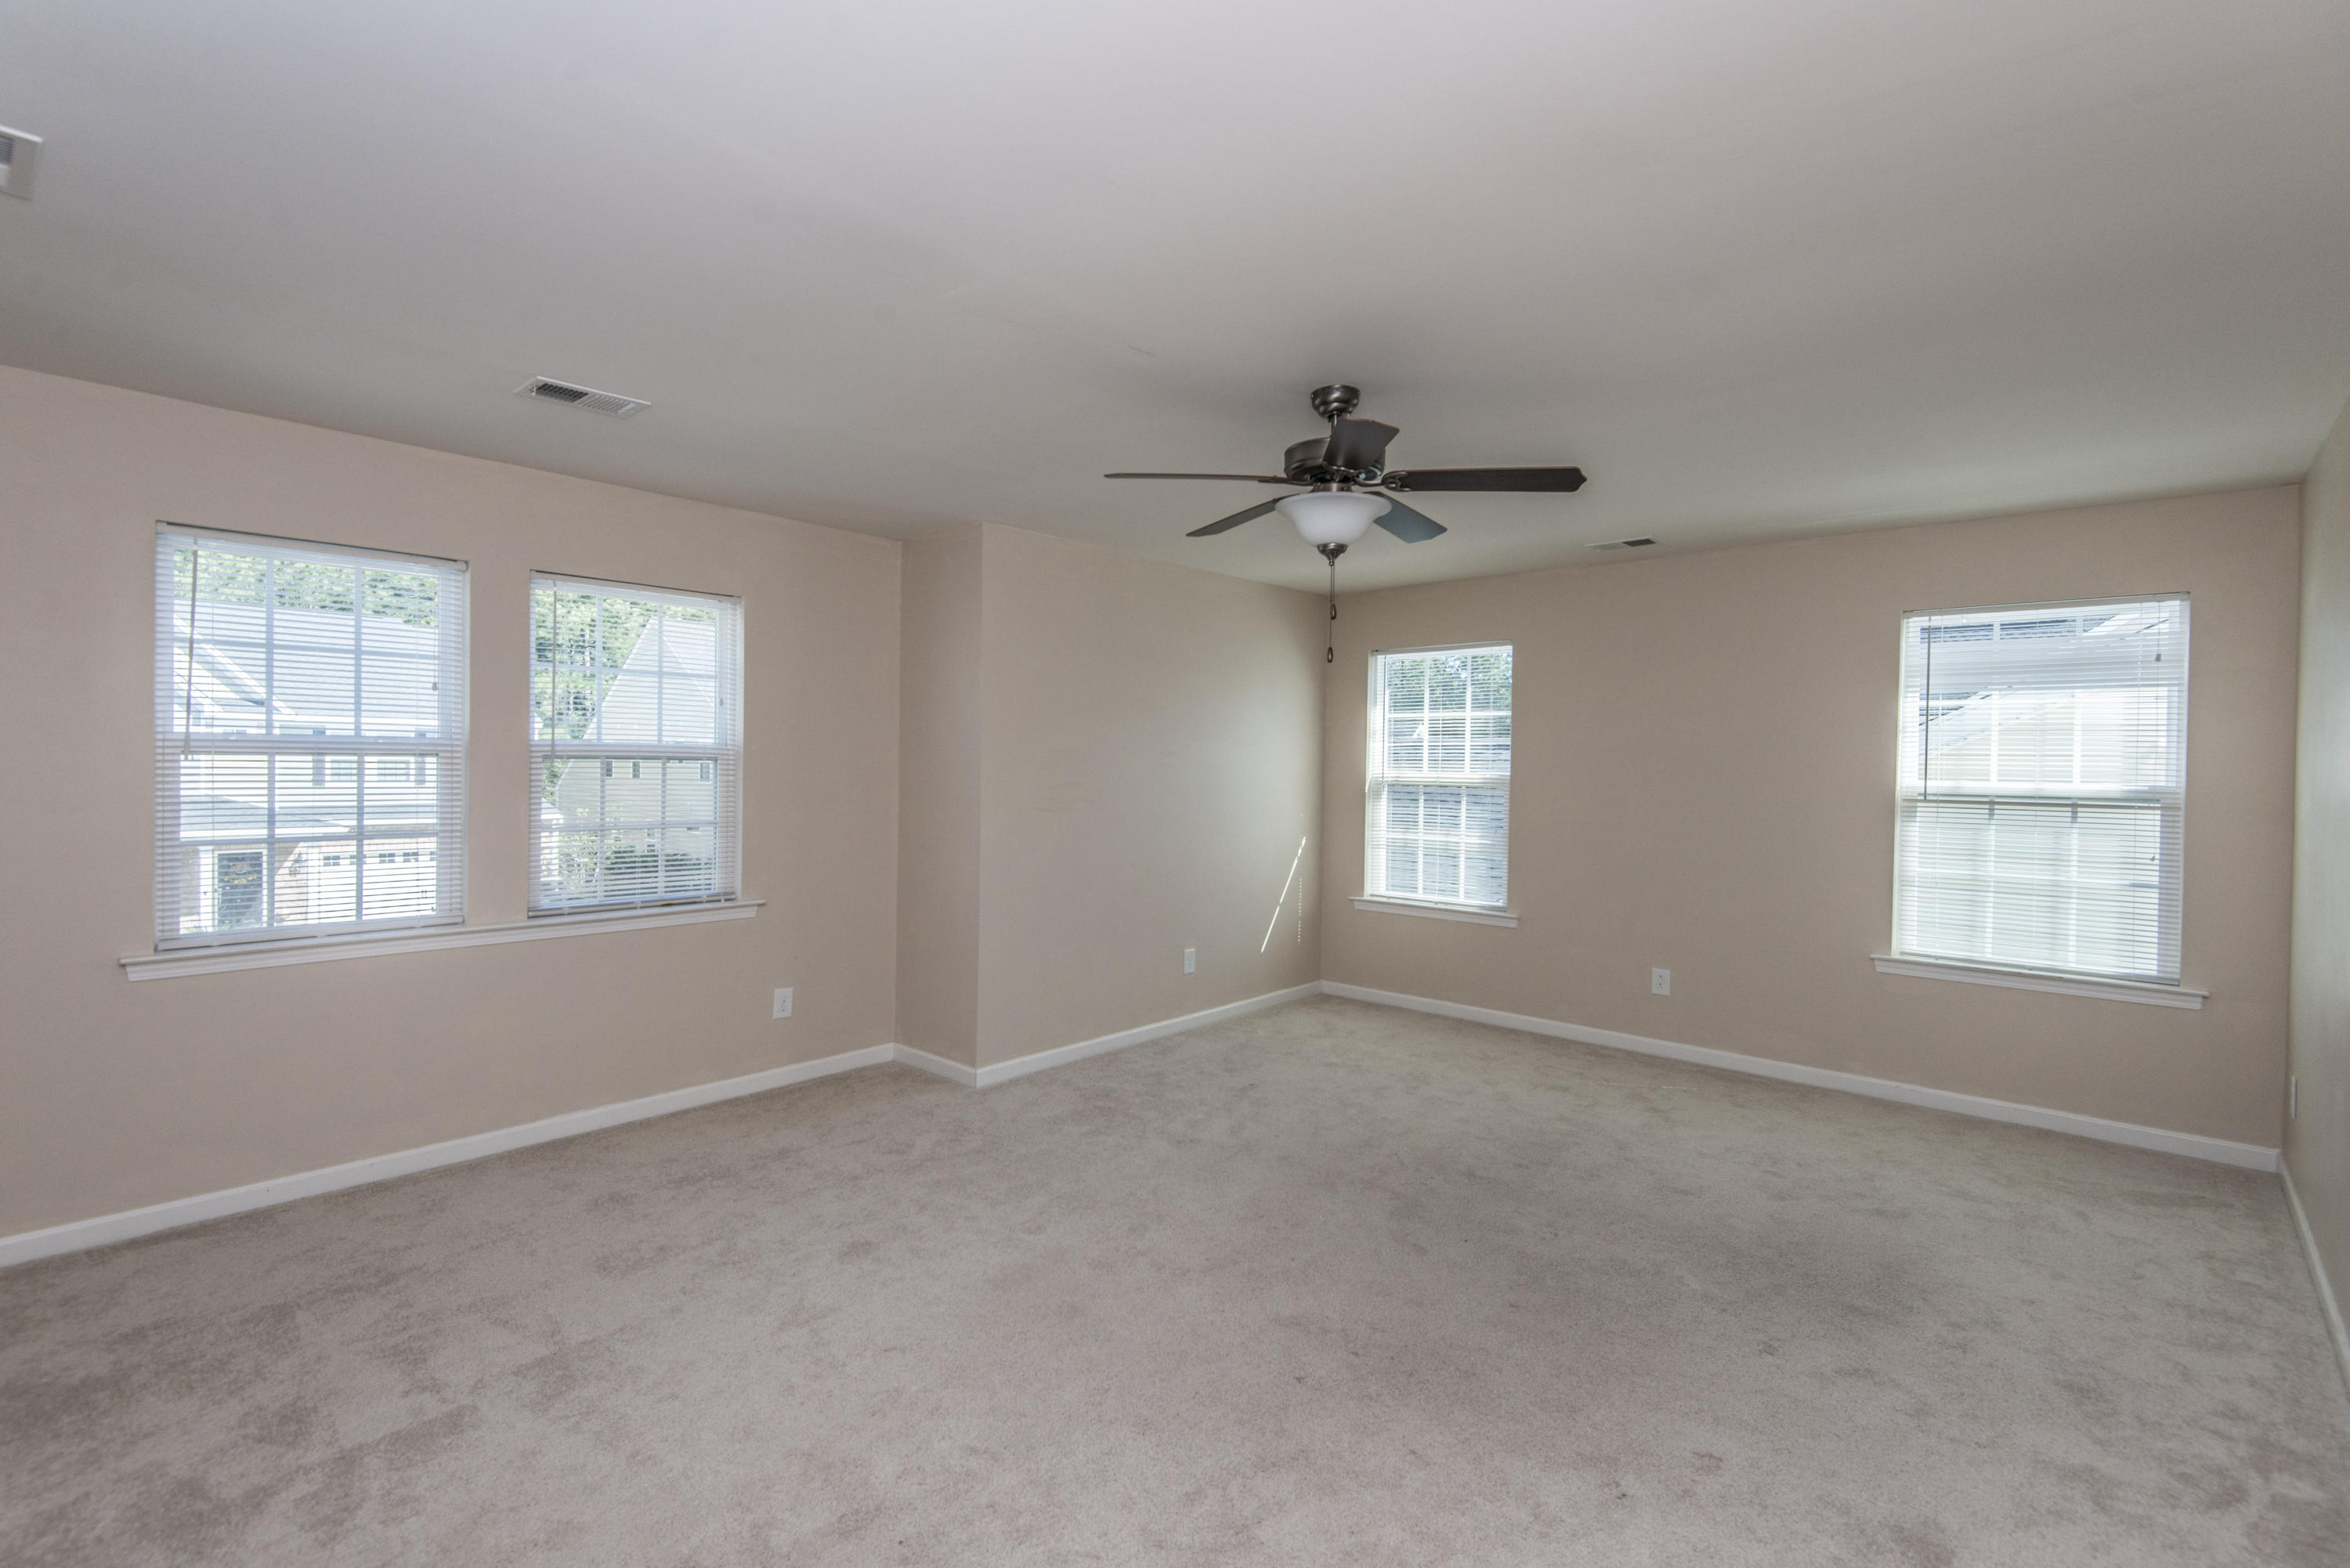 Wentworth Hall Homes For Sale - 216 Wexford, Summerville, SC - 29